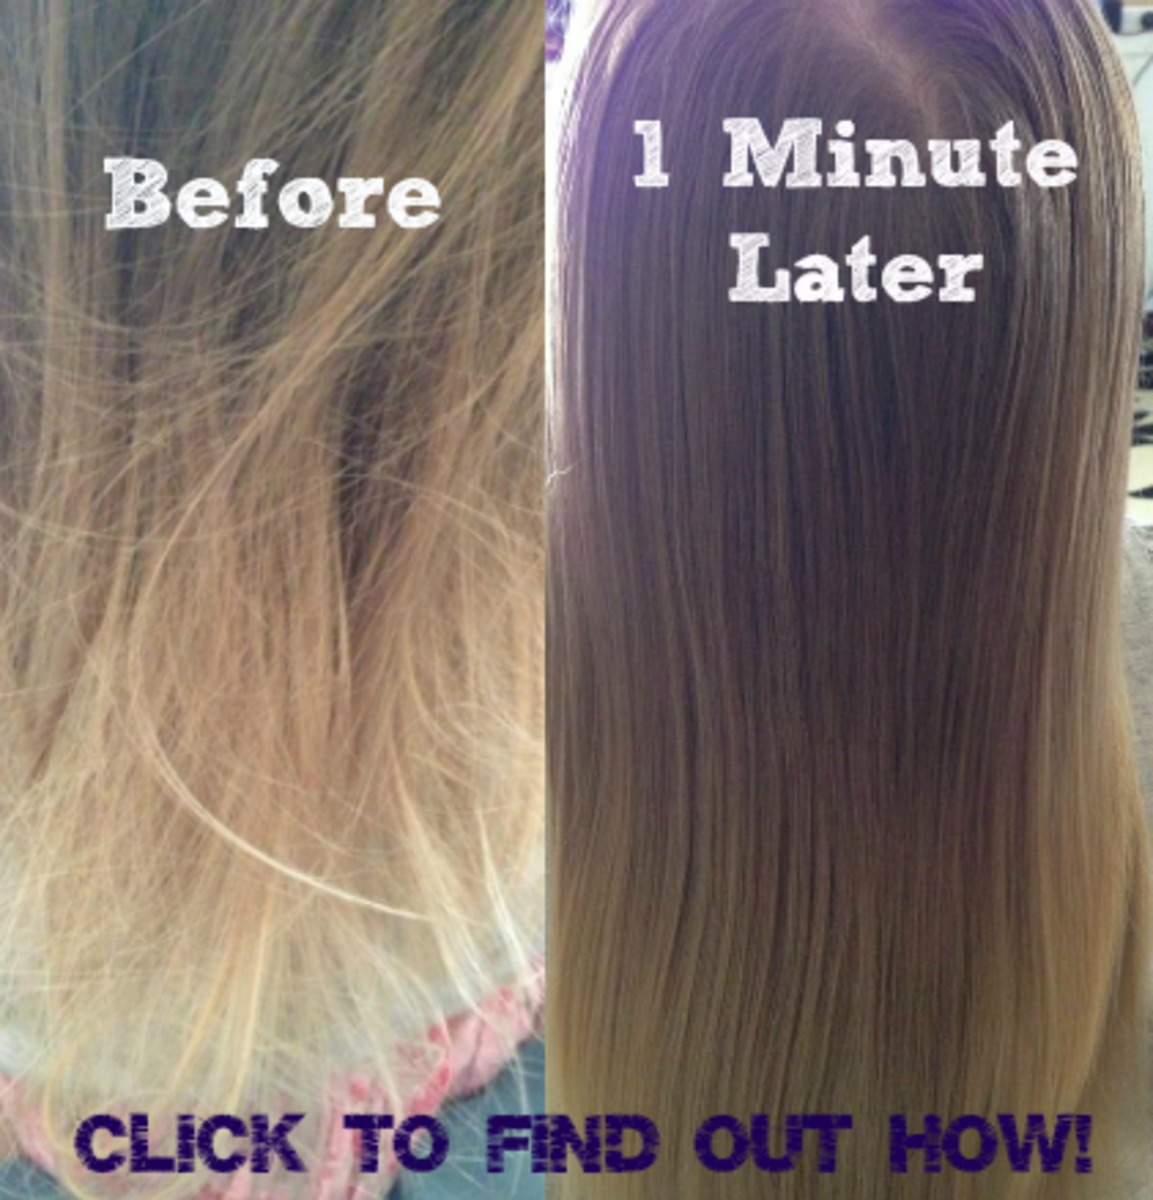 Untangle knotty curly hair in minutes.